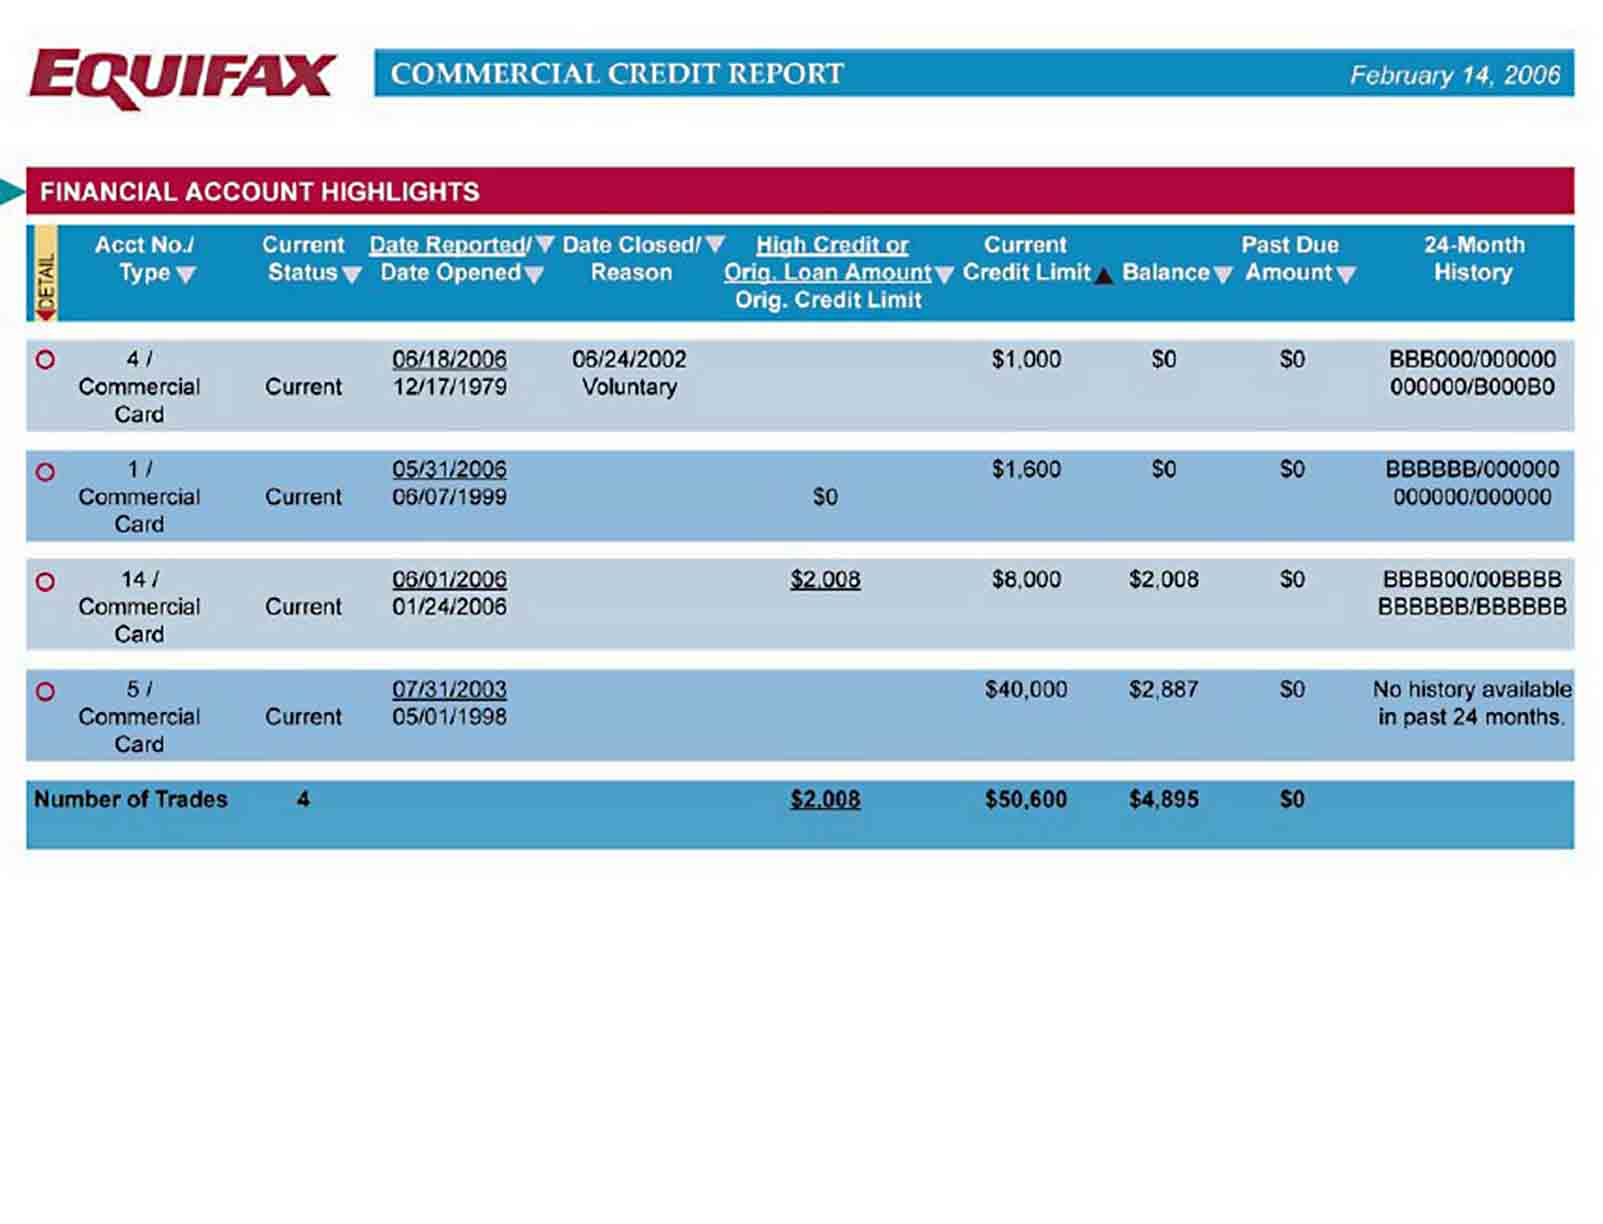 Commercial Credit Report sample